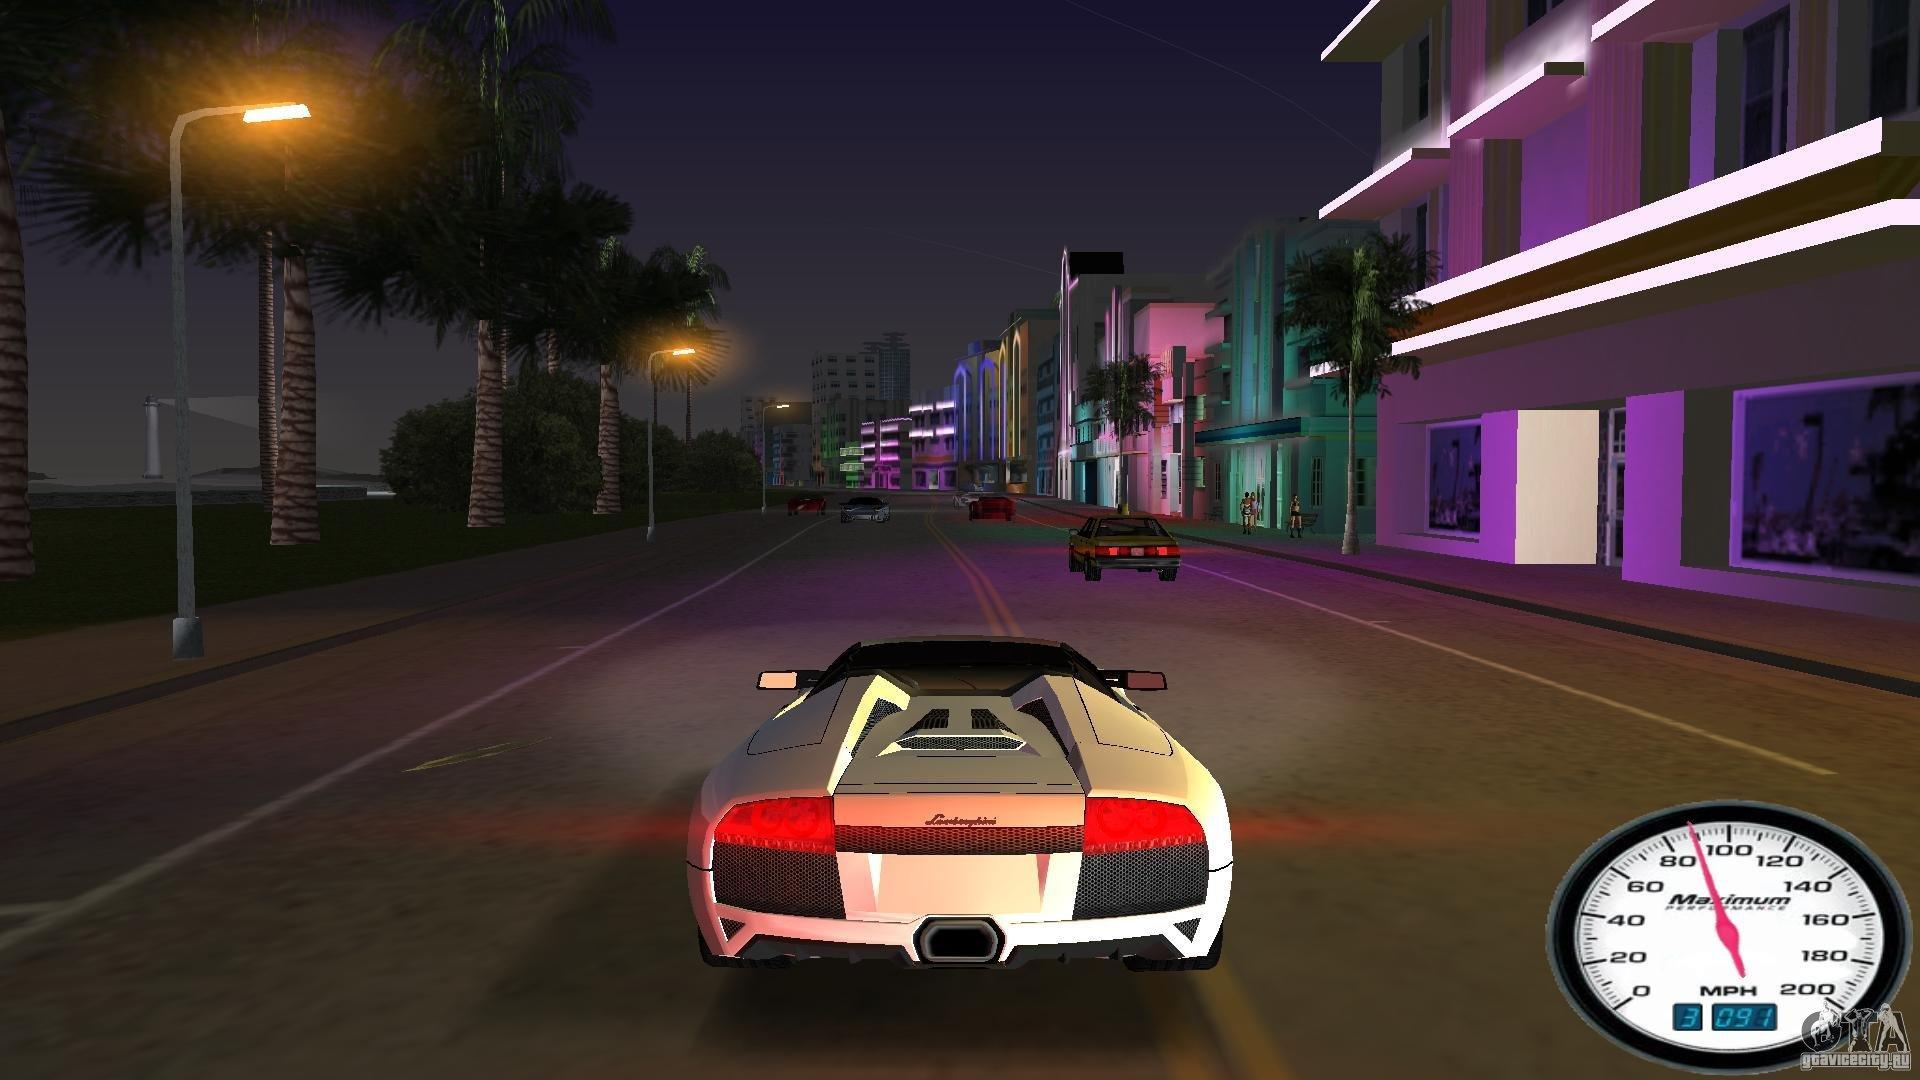 Download Game Gta Vice City For Android Mod – regrowsplum34 blog